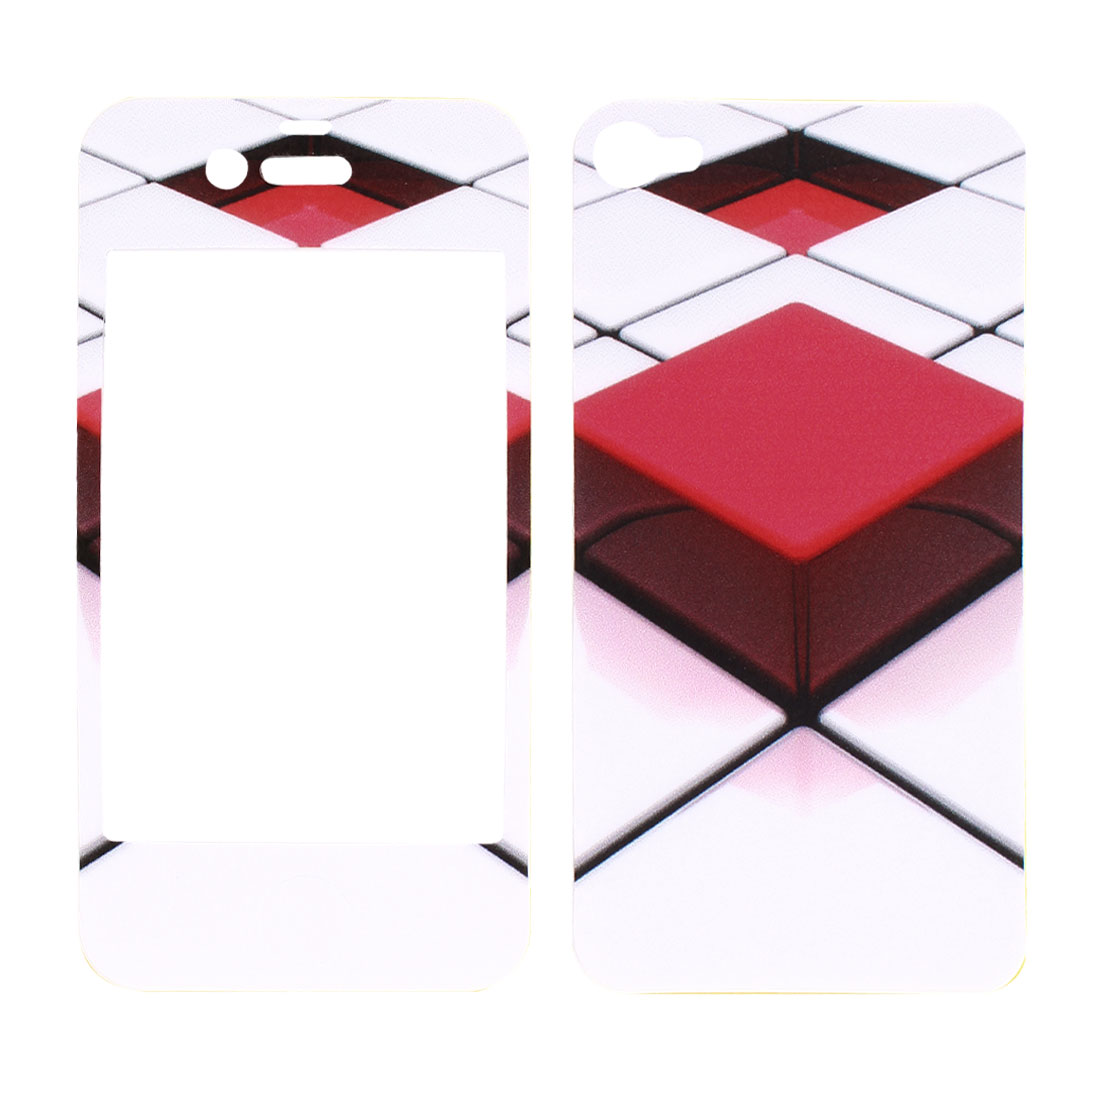 2 Pcs Red White Solid Block Pattern Vinyl Front Back Sticker Cover Protector for iPhone 4 4G 4S 4GS